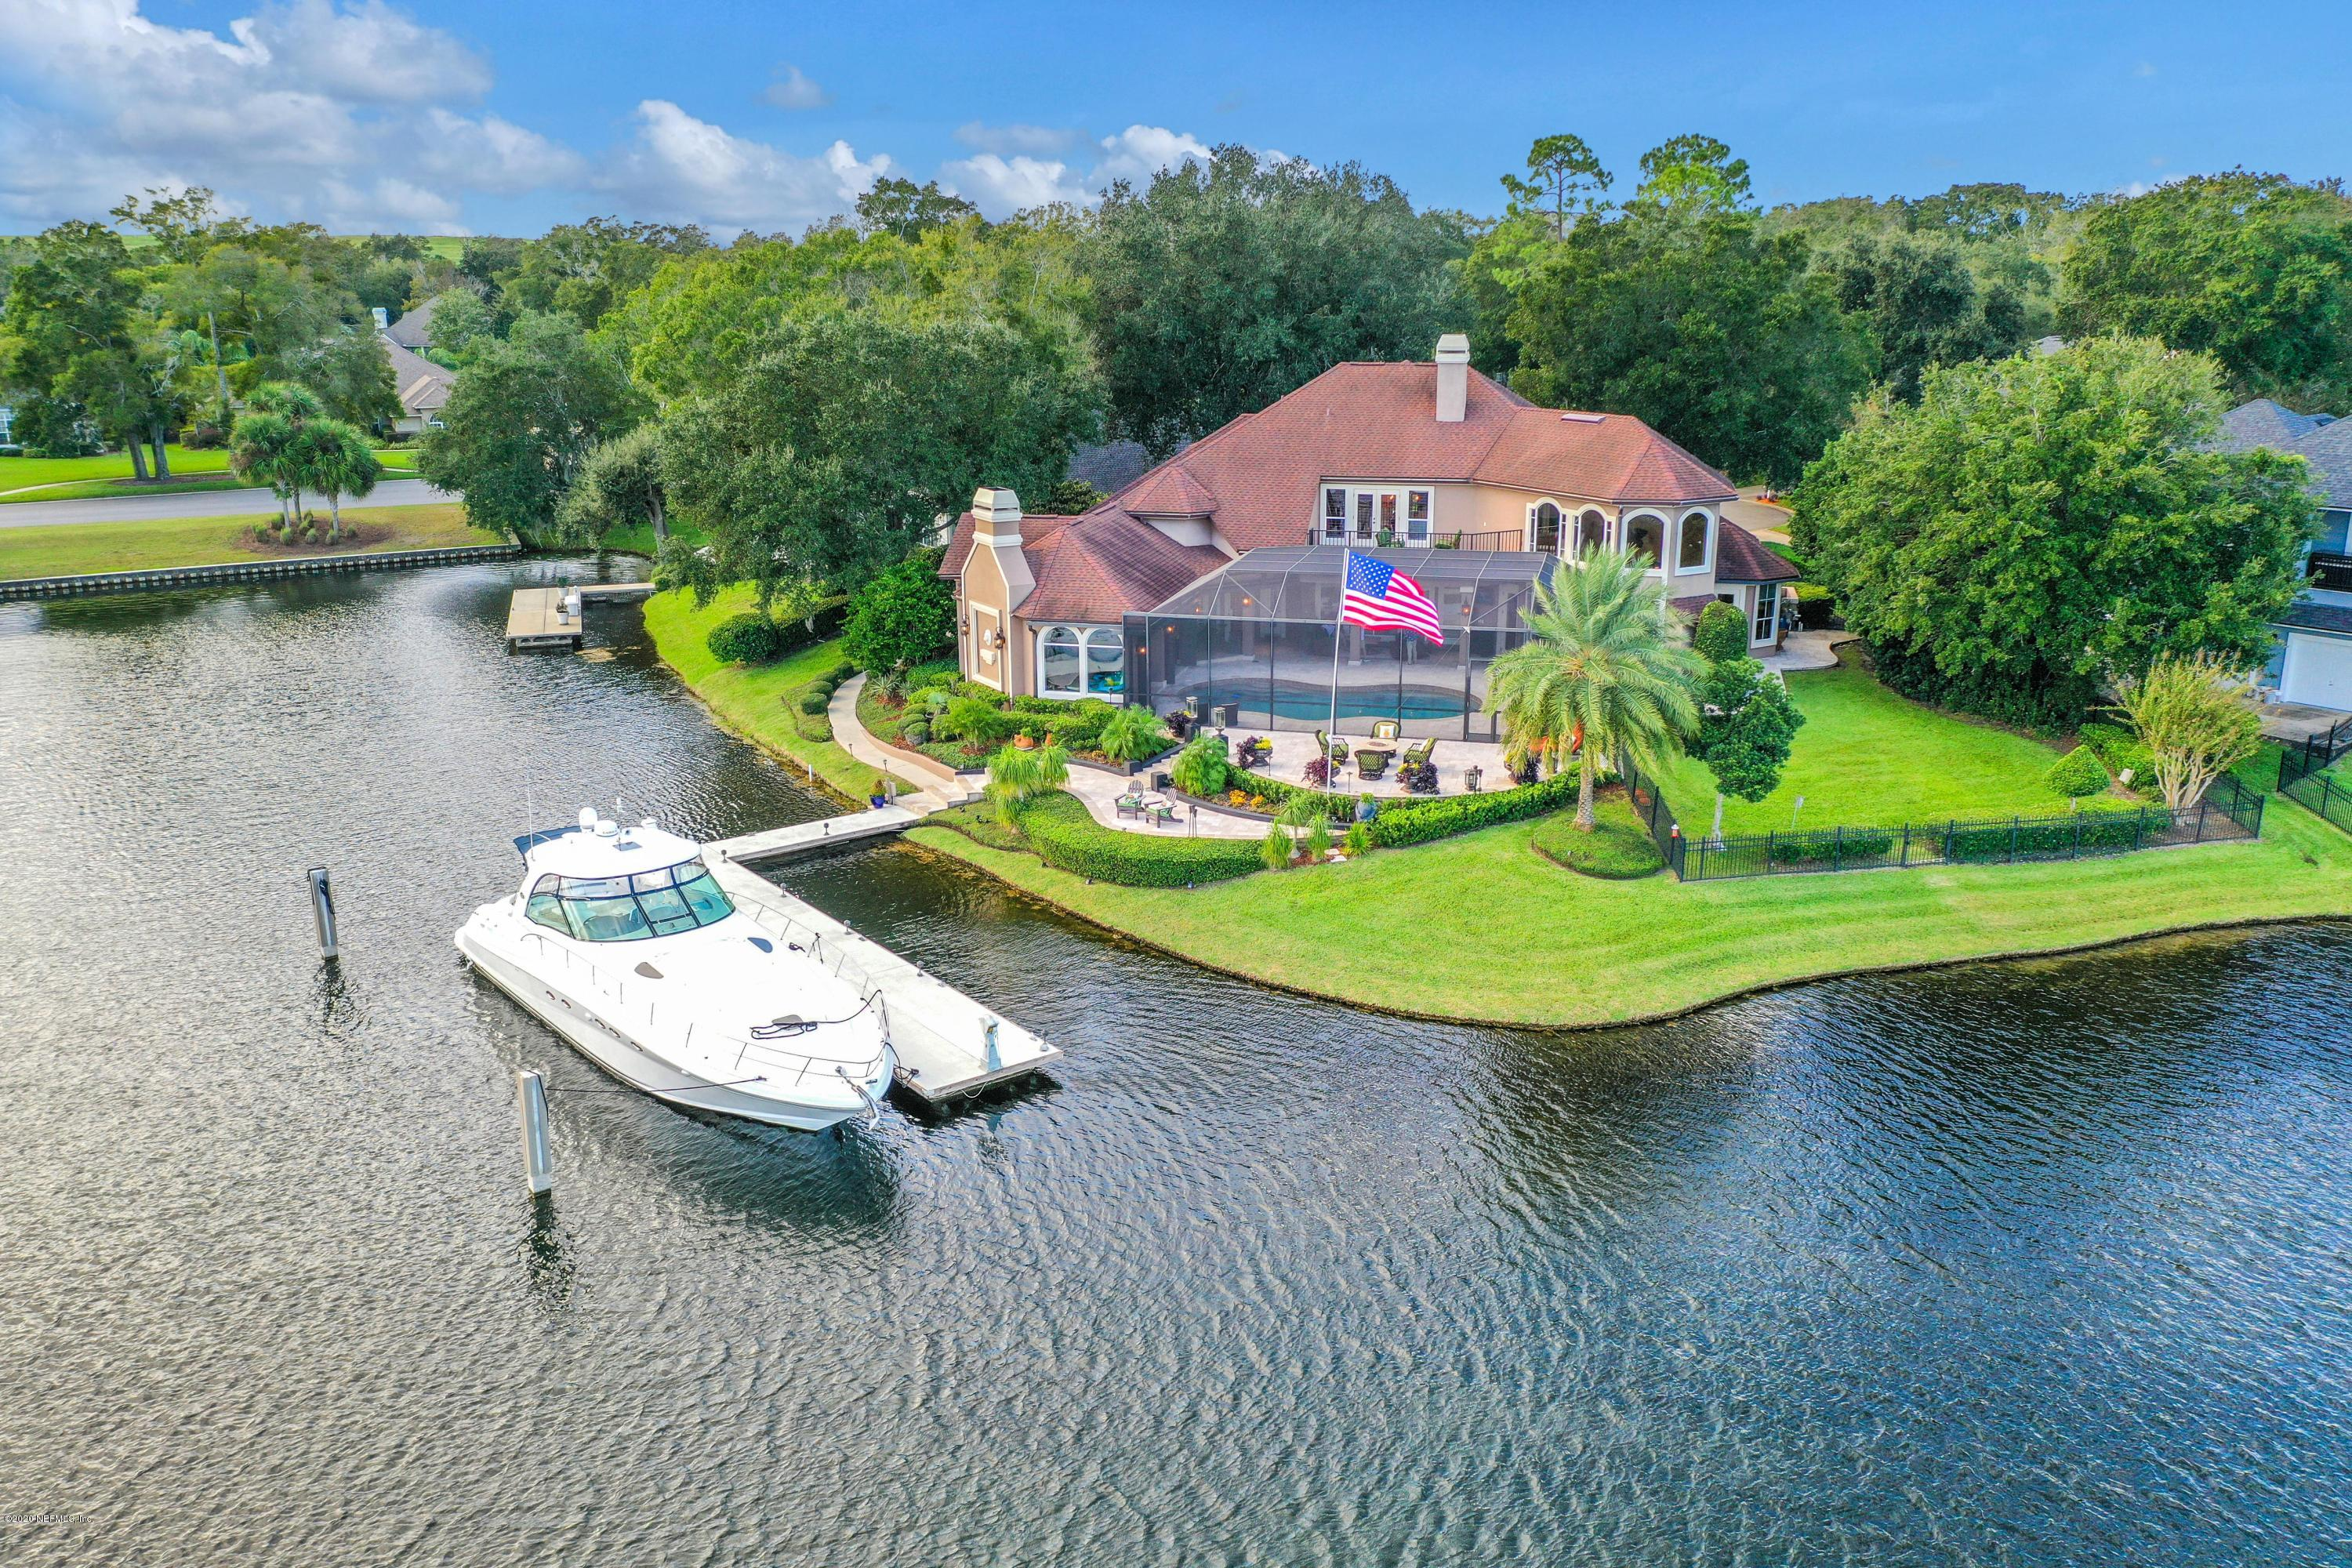 "Welcome to Emerald Cove, a mariner's masterpiece. This modern-Tuscan inspired home is situated on 237 feet of waterfront in Queen's Harbour Yacht and Country Club.  Located on the highly elusive lagoon just off the intracoastal waterway, this spring-fed basin is the only of its kind on the eastern seaboard.  Protected by a 110-foot lock and a Harbormaster, this unique circumstance creates a safe-harbor for valuable vessels by keeping them safely elevated above the tide.Inside this masterpiece you'll find highly-detailed wood and stonework through-out along with plenty of windows with picturesque views that fill the residence with an abundance of natural light.  The gourmet kitchen is fitting for the resident chef and comes equipped with high-end appliances and thoughtful conveniences. For the most ambitious collector there is a 750+ bottle wine cellar perfectly placed off the recreation room which offers stunning views of the lagoon.  The true jewel of the home is the outdoor living where as much detail went outside as did the inside, starting with a distinctive ""post and beam"" lifestyle pavilion. Situated off the pool overlooking the lagoon, this creative space offers over 4,000 square feet of relaxation and helps blend the interior and exterior areas by offering its own private jacuzzi with fireplace, a summer kitchen and pizza oven and finally, its own teppanyaki grill.  The landscape architecture maximizes the grounds and allows for multiple terraces to either step-away for an intimate candlelit dinner or wake up and re-energize with sunrise yoga on the natural lagoon."